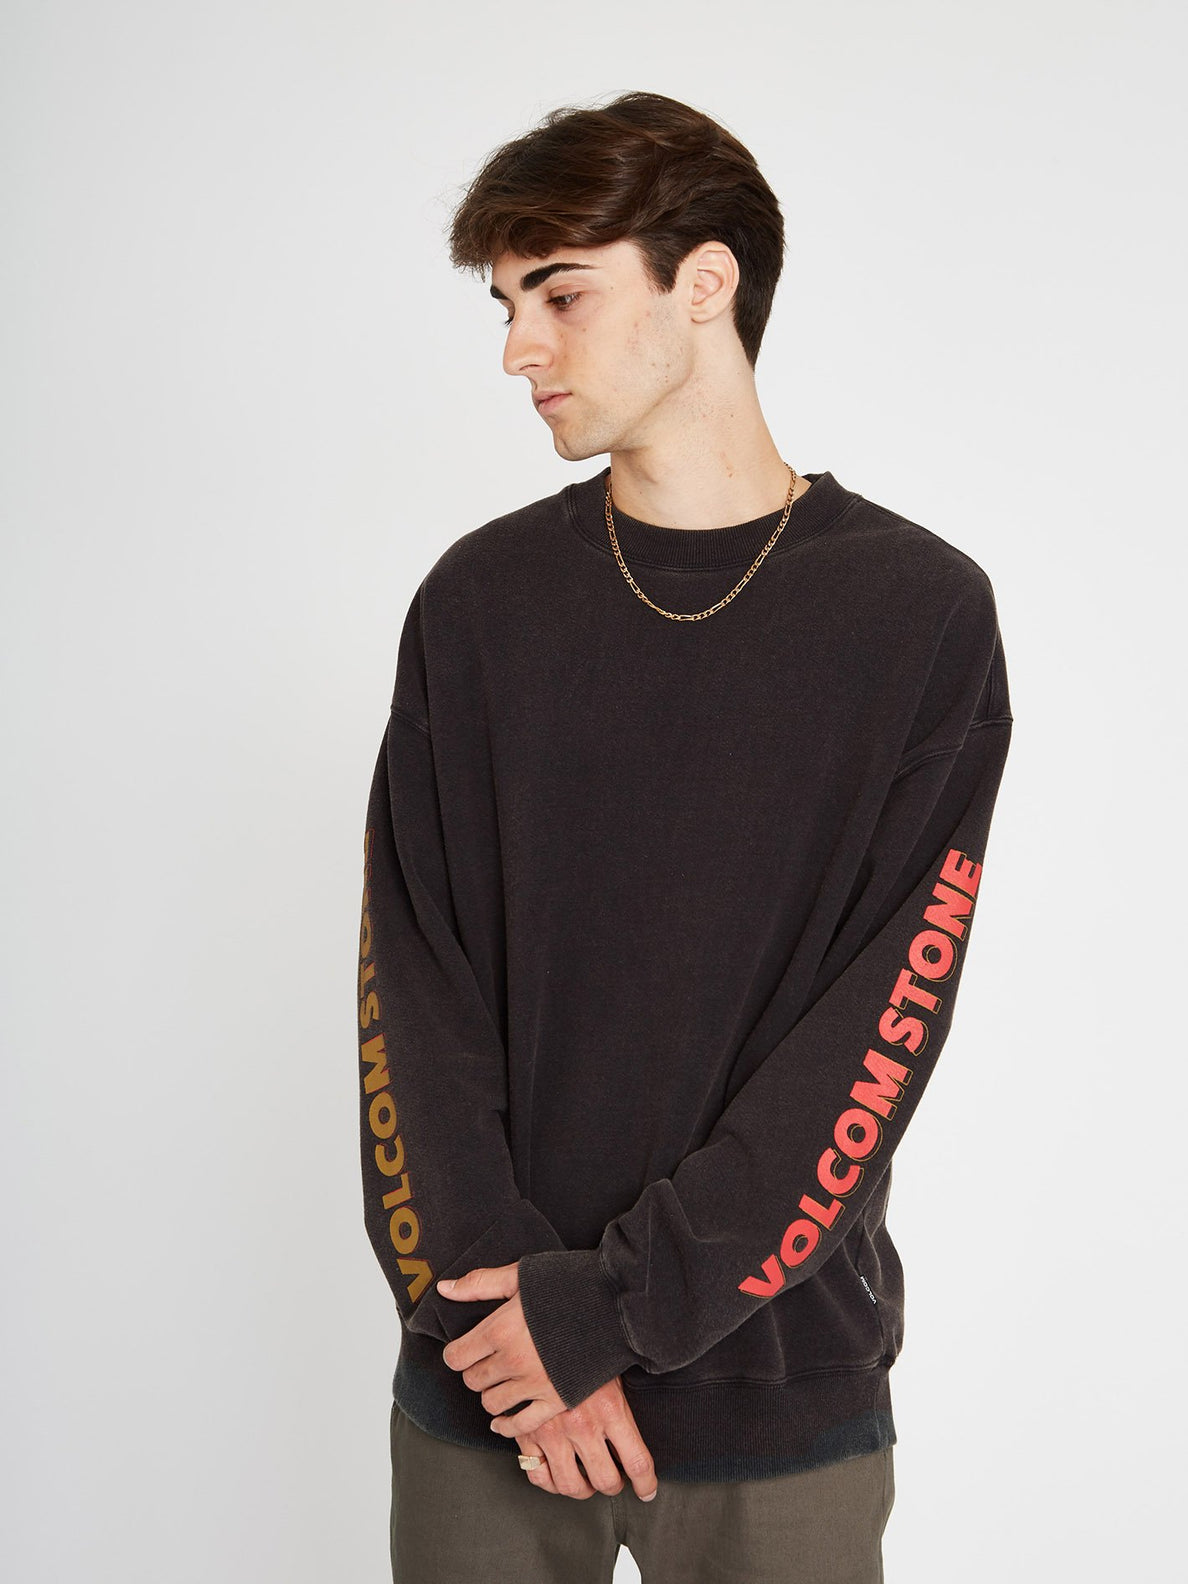 Harcid Wash Sweatshirt - Black (A4612153_BLK) [F]